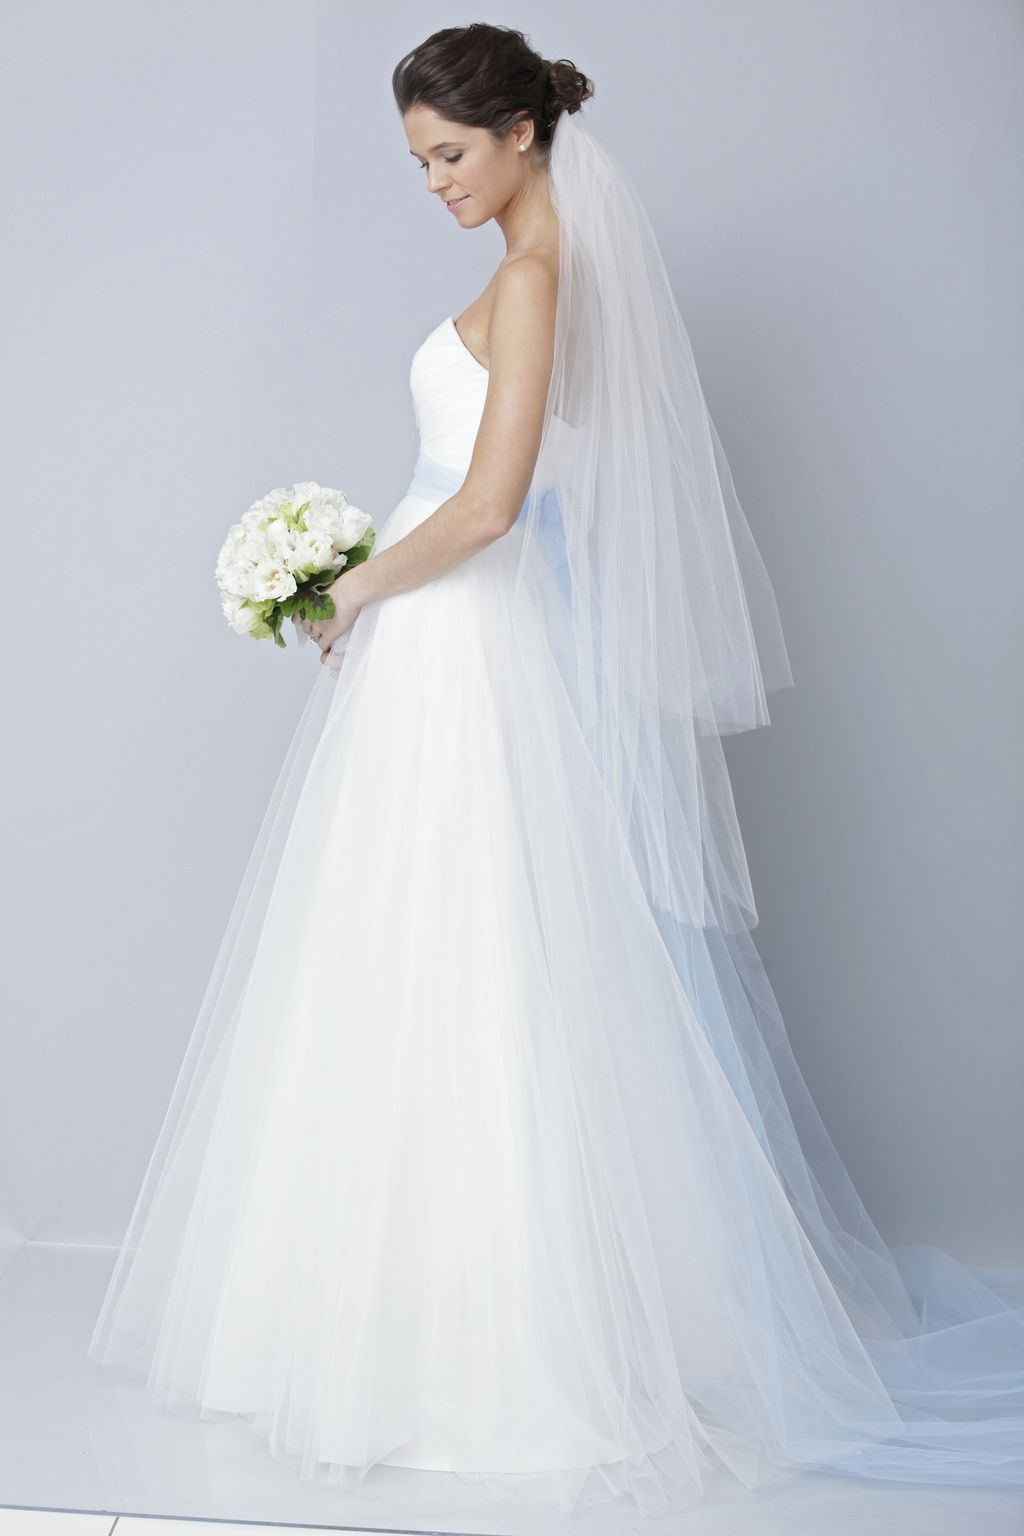 Contemporary Jj Bridal Gowns Inspiration - Top Wedding Gowns ...